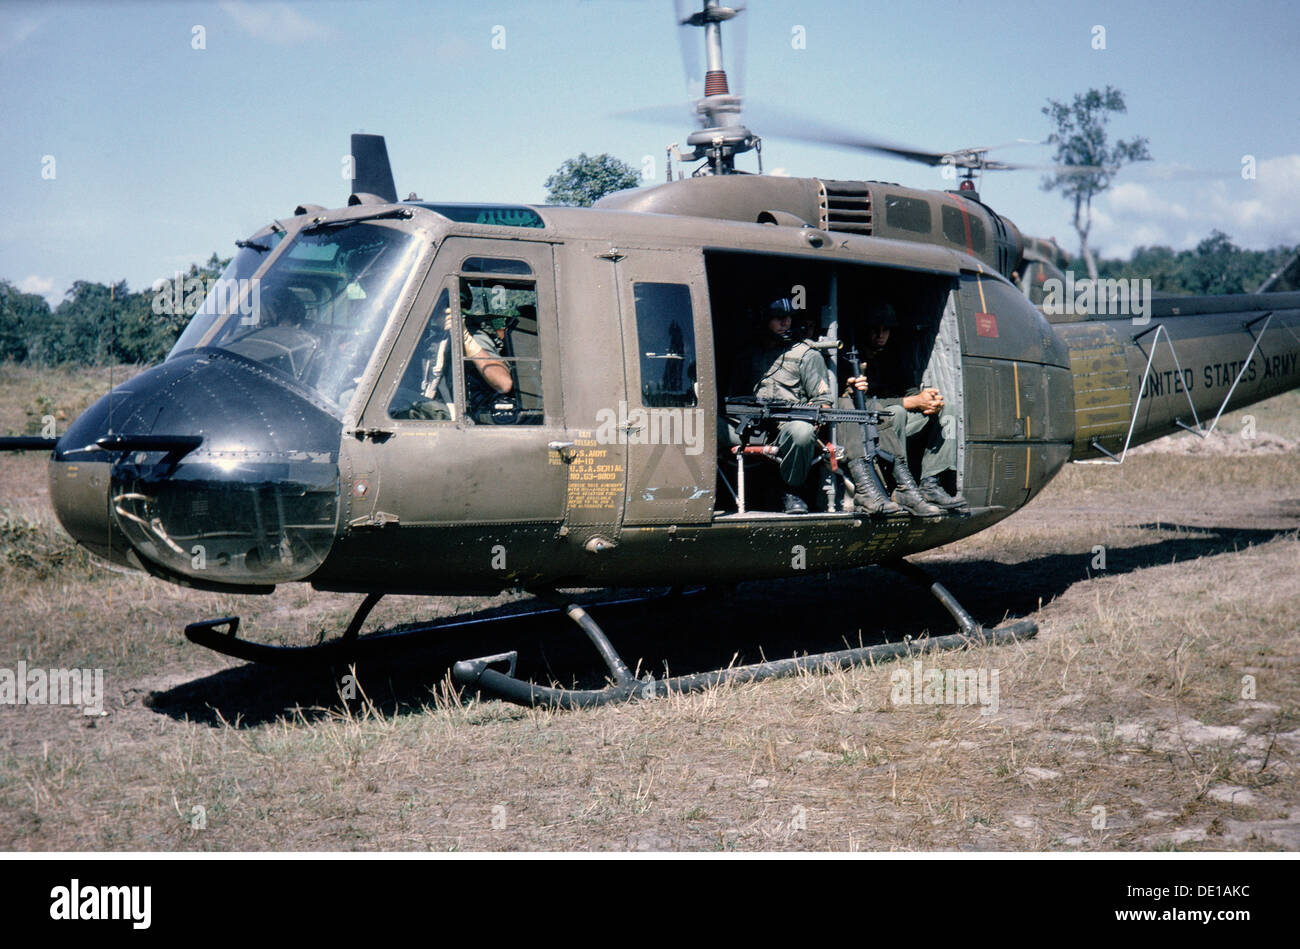 comp helicopters with Stock Photo Vietnam War 1957 1975 American Soldiers In A Helicopter Bell Uh 1 60266624 on Airwolf Helicopter Tv Show besides Flightgear Flight Simulator further 752270 furthermore Stock Photo Vietnam War 1957 1975 American Soldiers In A Helicopter Bell Uh 1 60266624 also Collectionodwn Original Pokemon Names List.